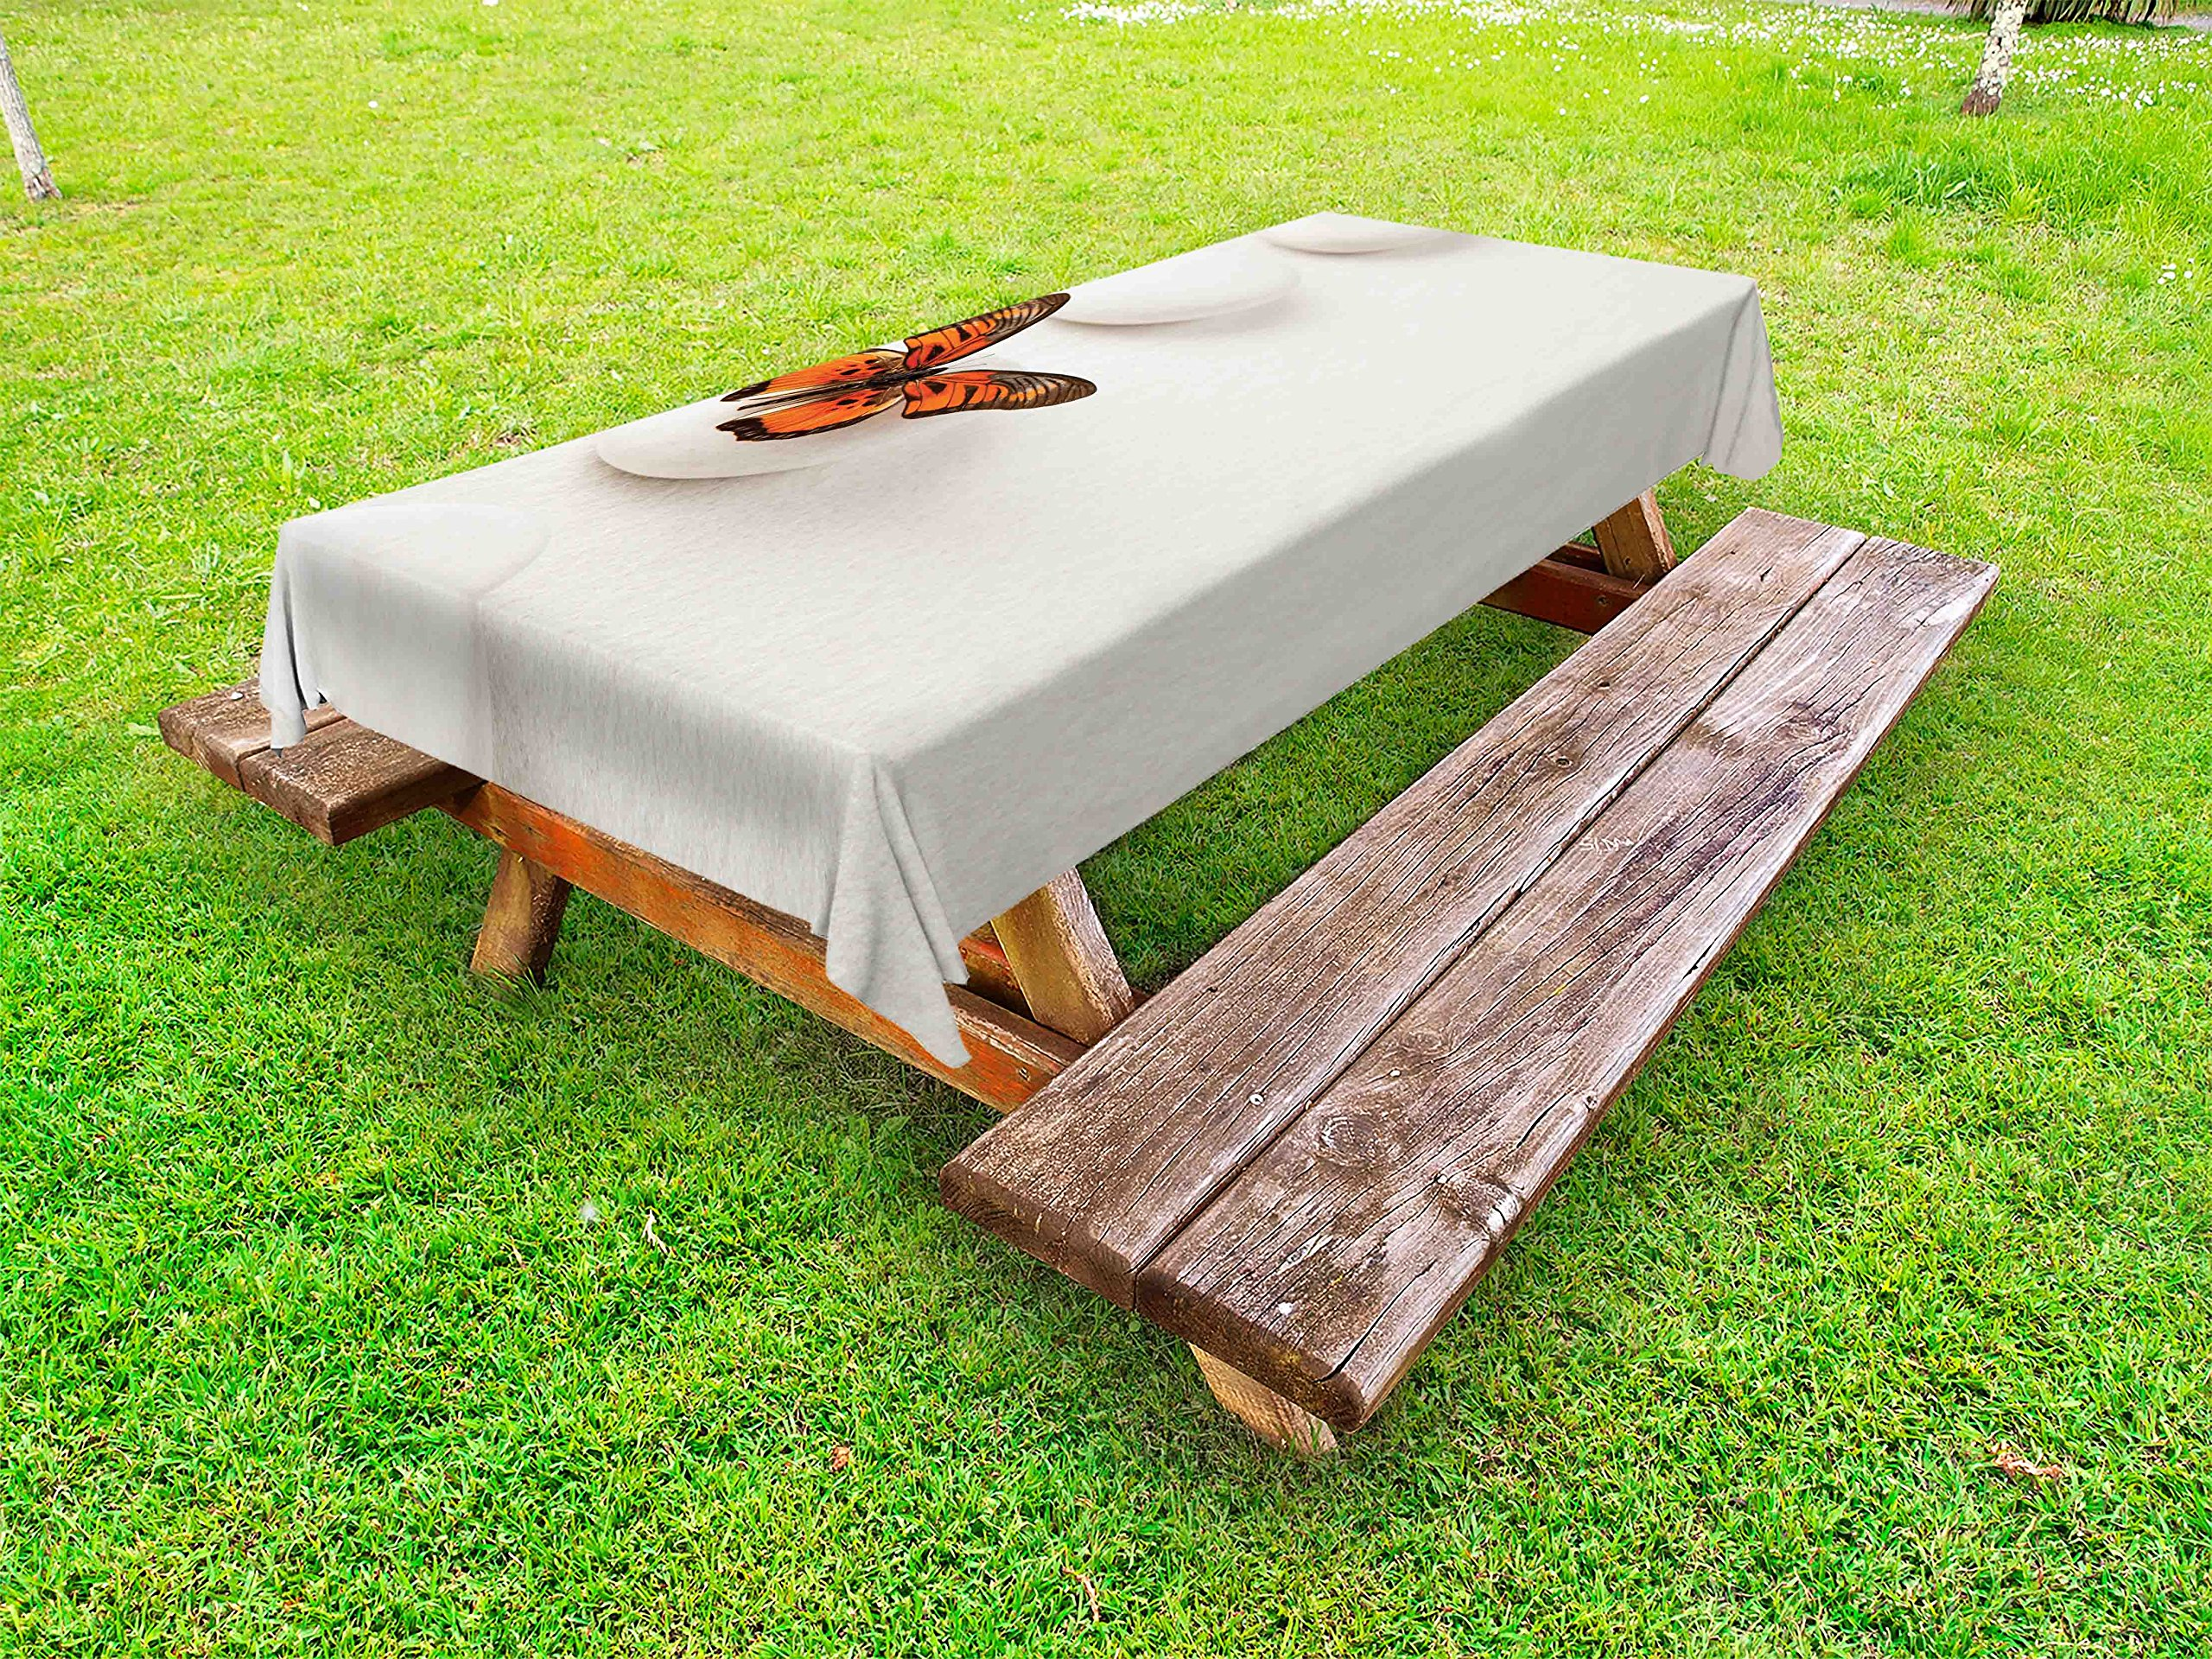 Ambesonne Spa Outdoor Tablecloth, Plain Pattern with Butterfly and Rocks Wellness Purity Healing Serenity Bohemian, Decorative Washable Picnic Table Cloth, 58 X 120 inches, White Orange